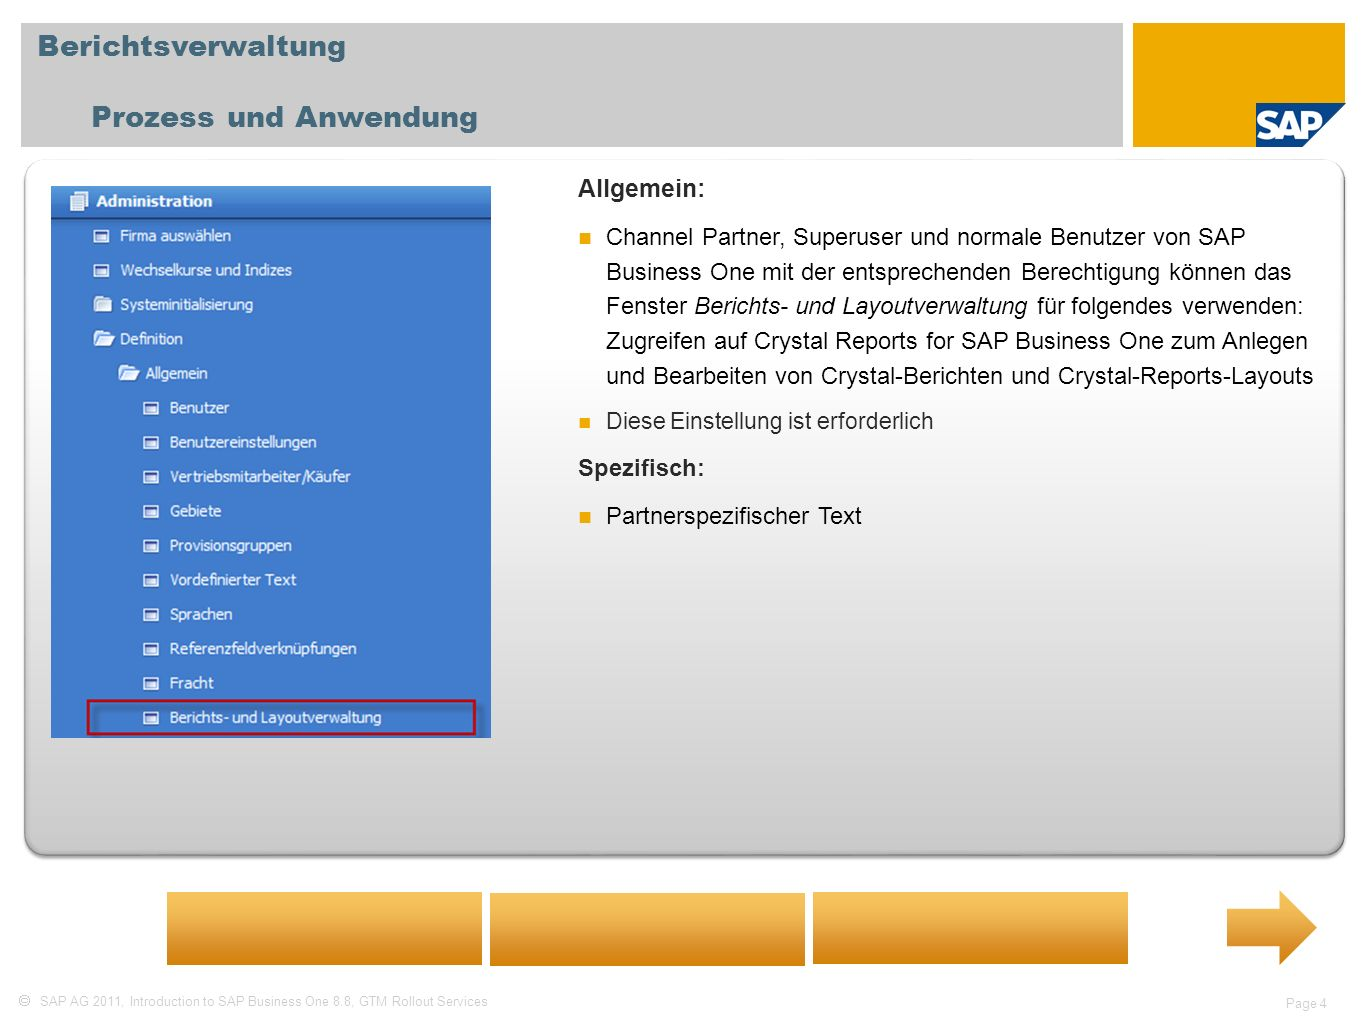 SAP AG 2011, Introduction to SAP Business One 8.8, GTM Rollout Services Page 5 Druckeinstellungen Prozess und Anwendung Allgemein: In diesem Fenster können Sie die Standardeinstellungen für den Belegdruck in SAP Business One vornehmen.